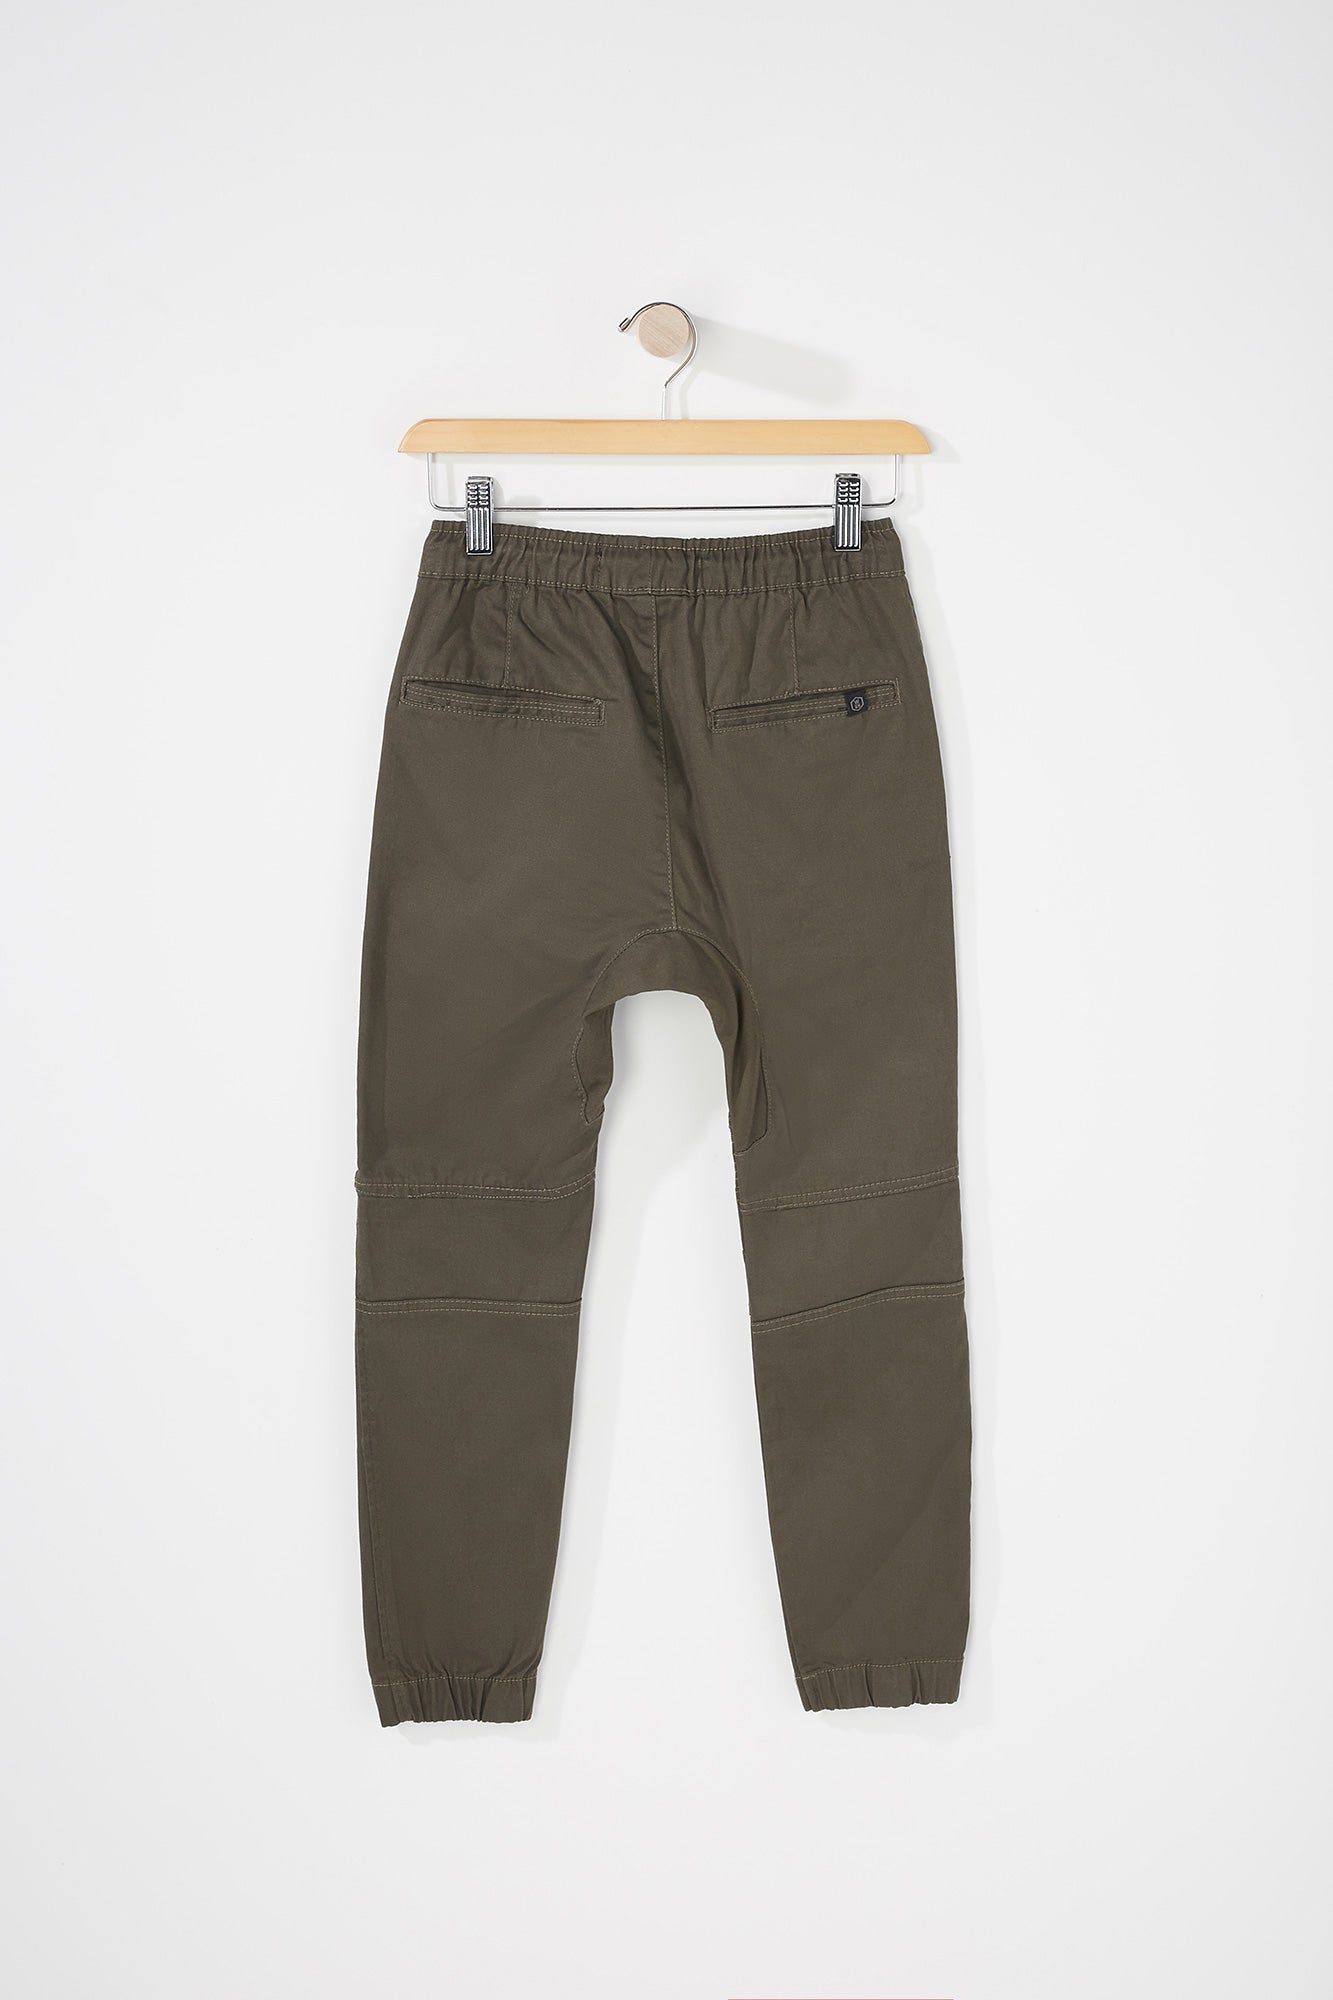 West49 Youth Moto Jogger